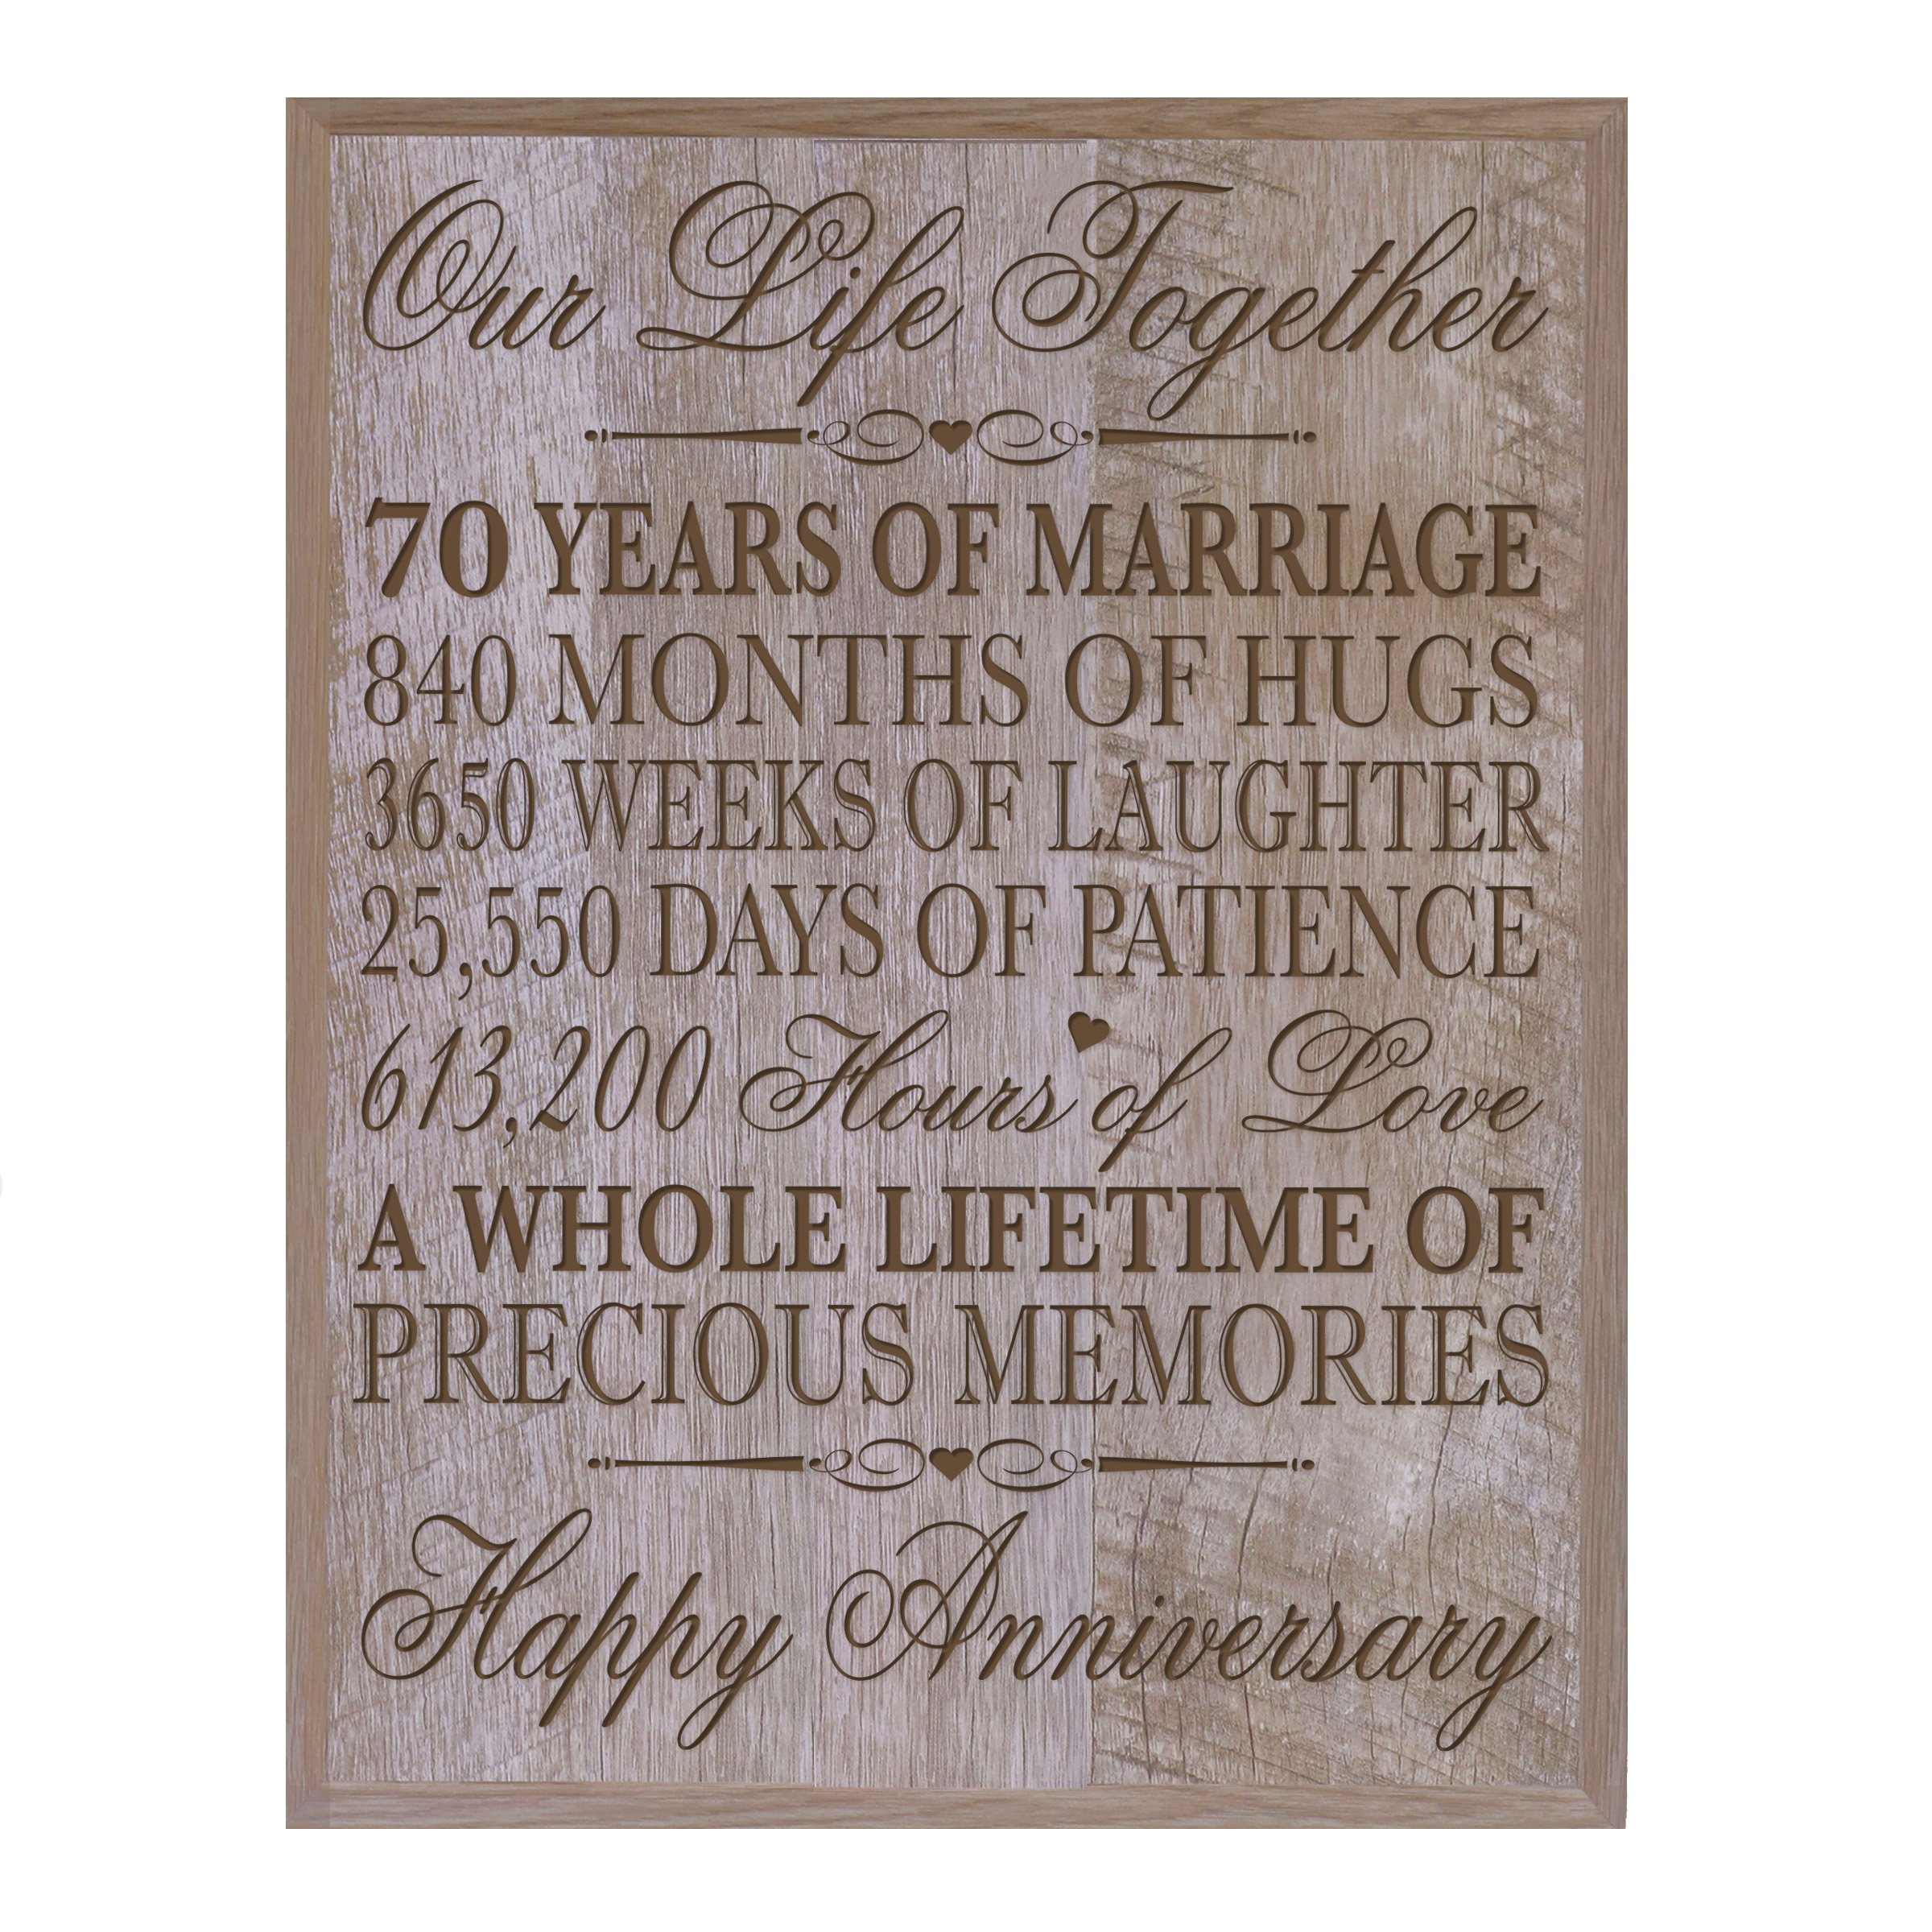 15 Wedding Anniversary Gifts For Her: 70th Wedding Anniversary Wall Plaque Gifts For Couple